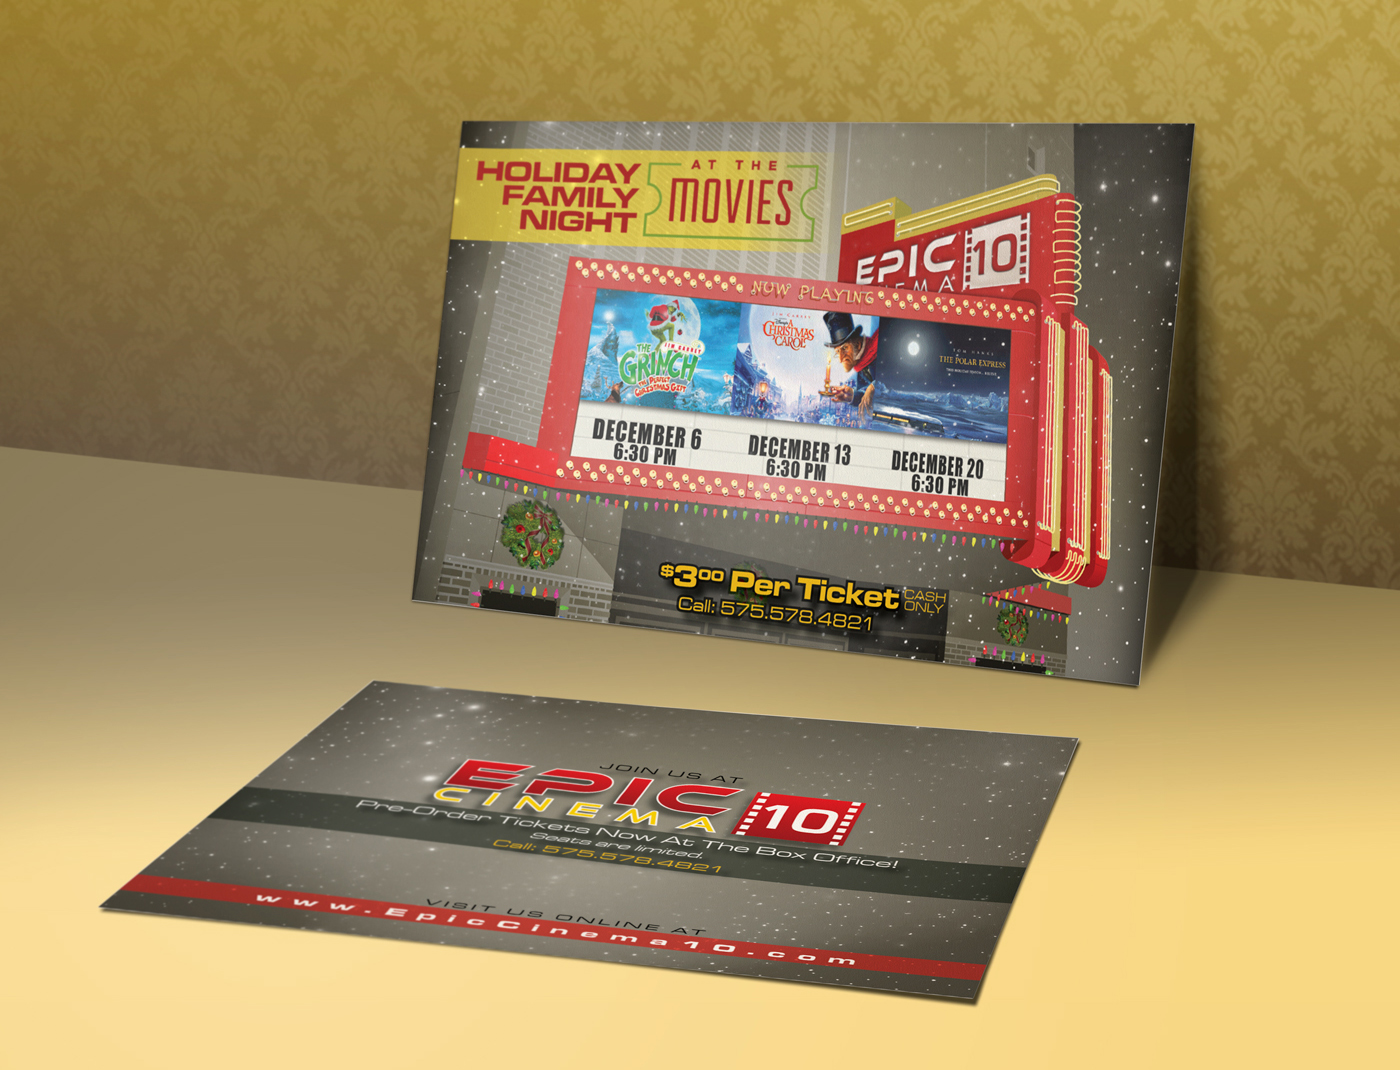 Epic Cinema 10 Logo & Postcard